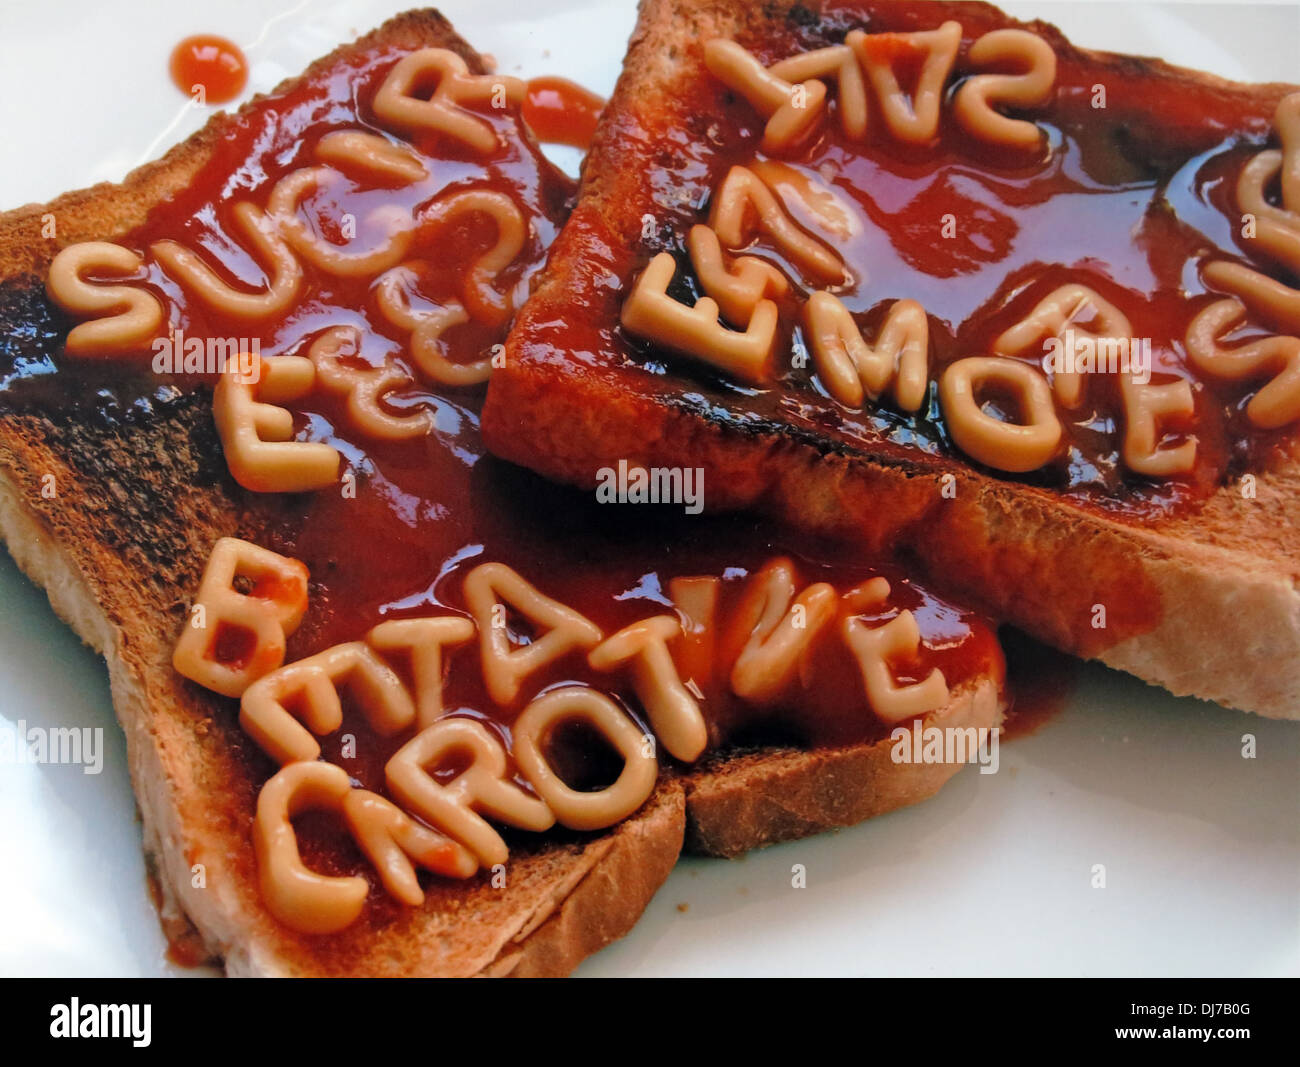 alphagetti,spaghetti,on,toast,spelling,word,words,letters,betacarotene,e-numbers,E,numbers,salt,sugar,too,much,in,our,processed,food,eat,more,rubbish,supermarket,heinz,tomato,sauce,industry,bad,poor,additive,gotonysmith